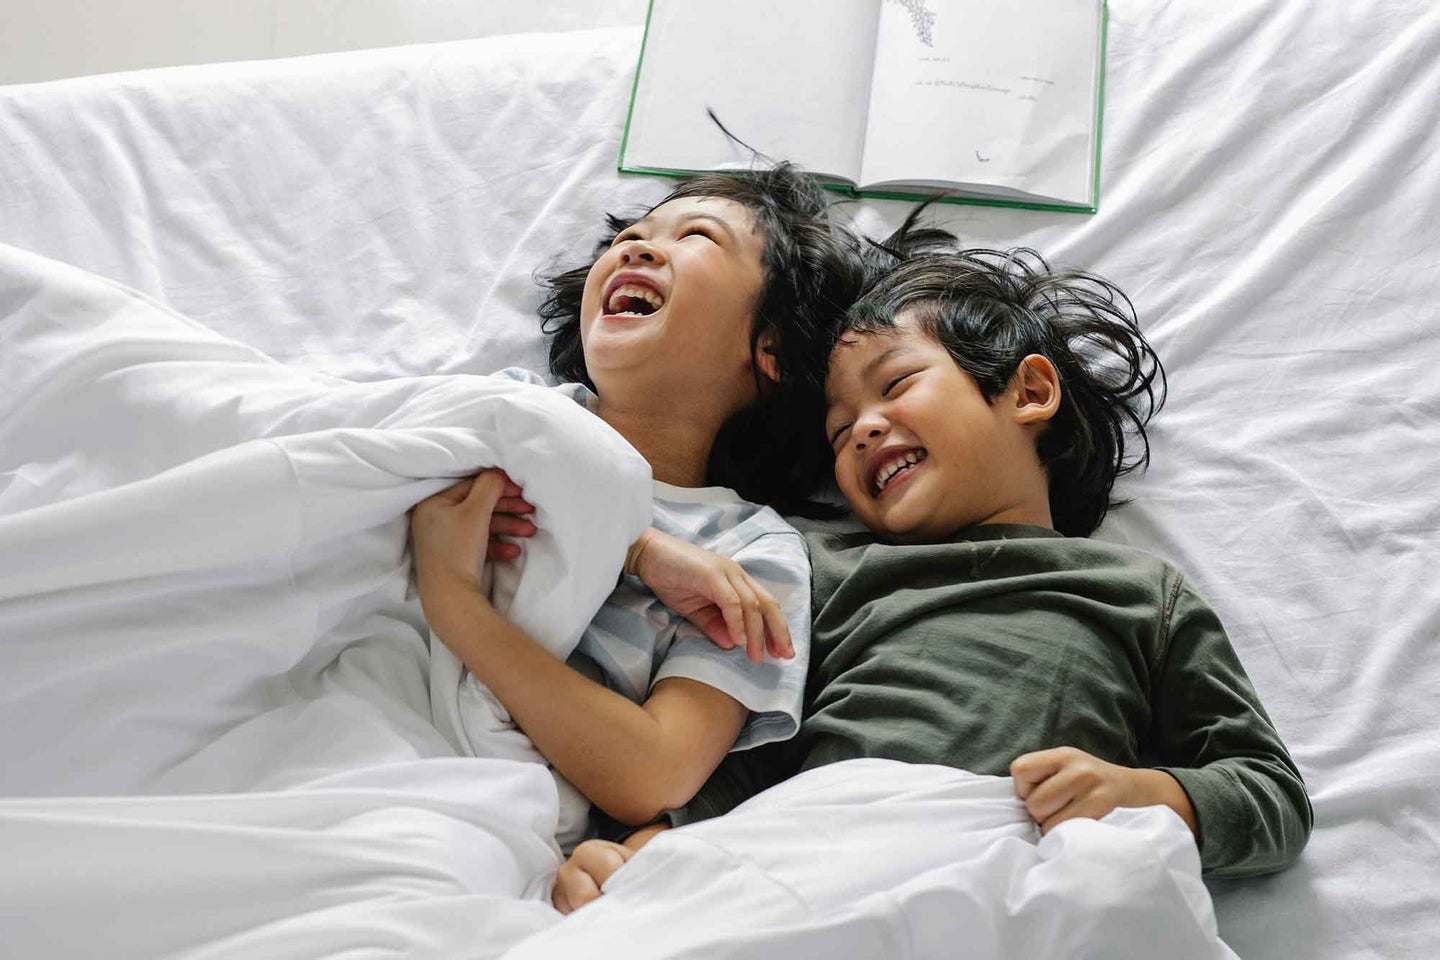 Two kids playing in bed